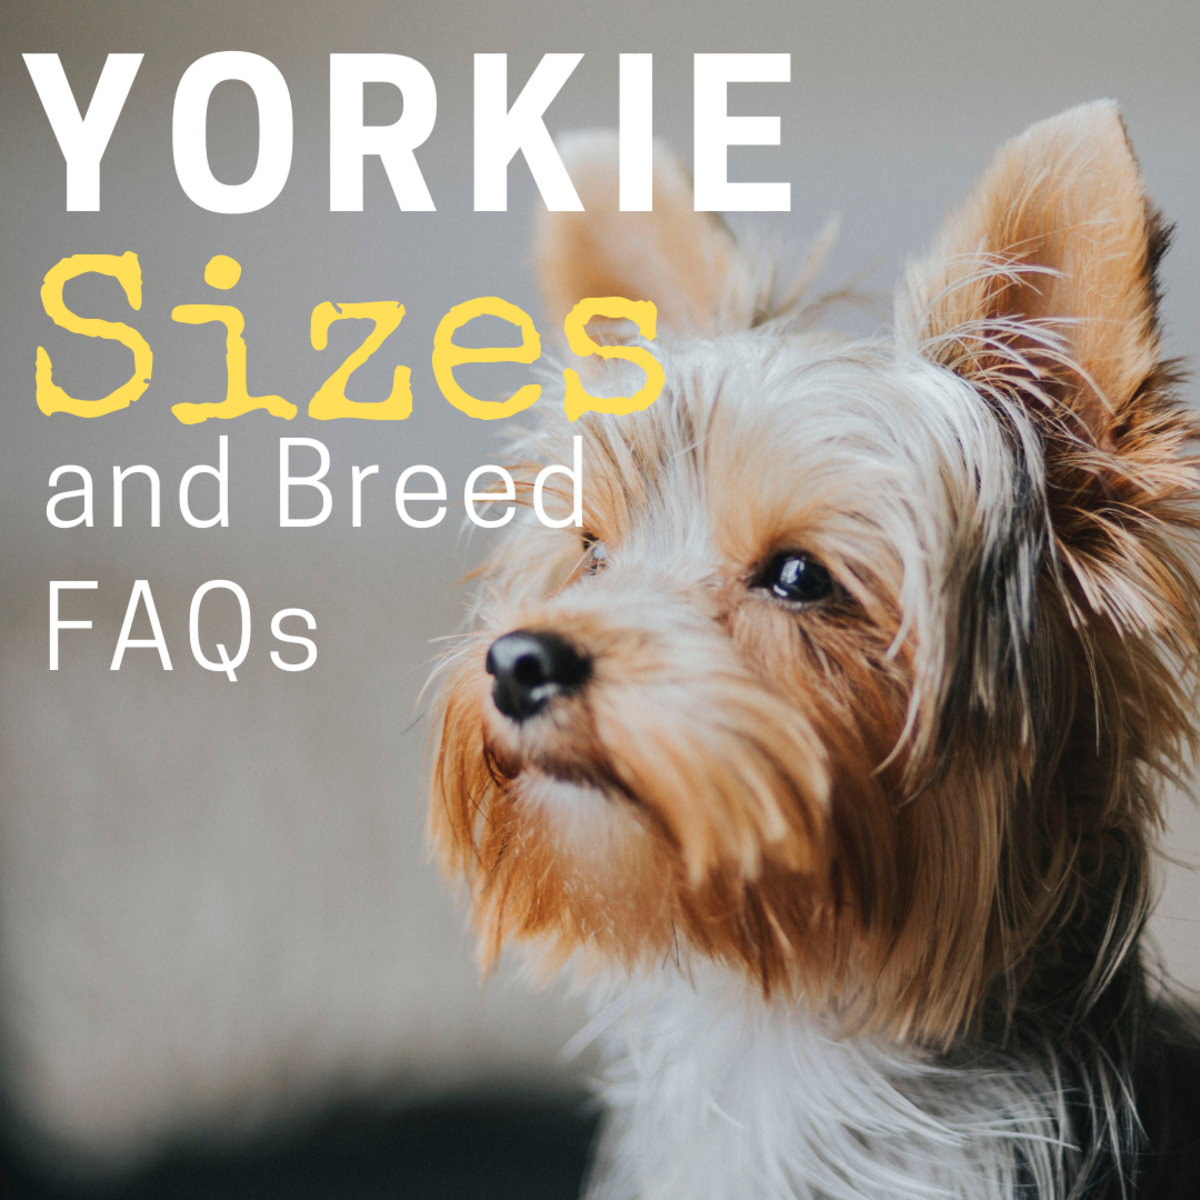 Yorkie Sizes Big Standard And Small Yorkshire Terriers Pethelpful By Fellow Animal Lovers And Experts